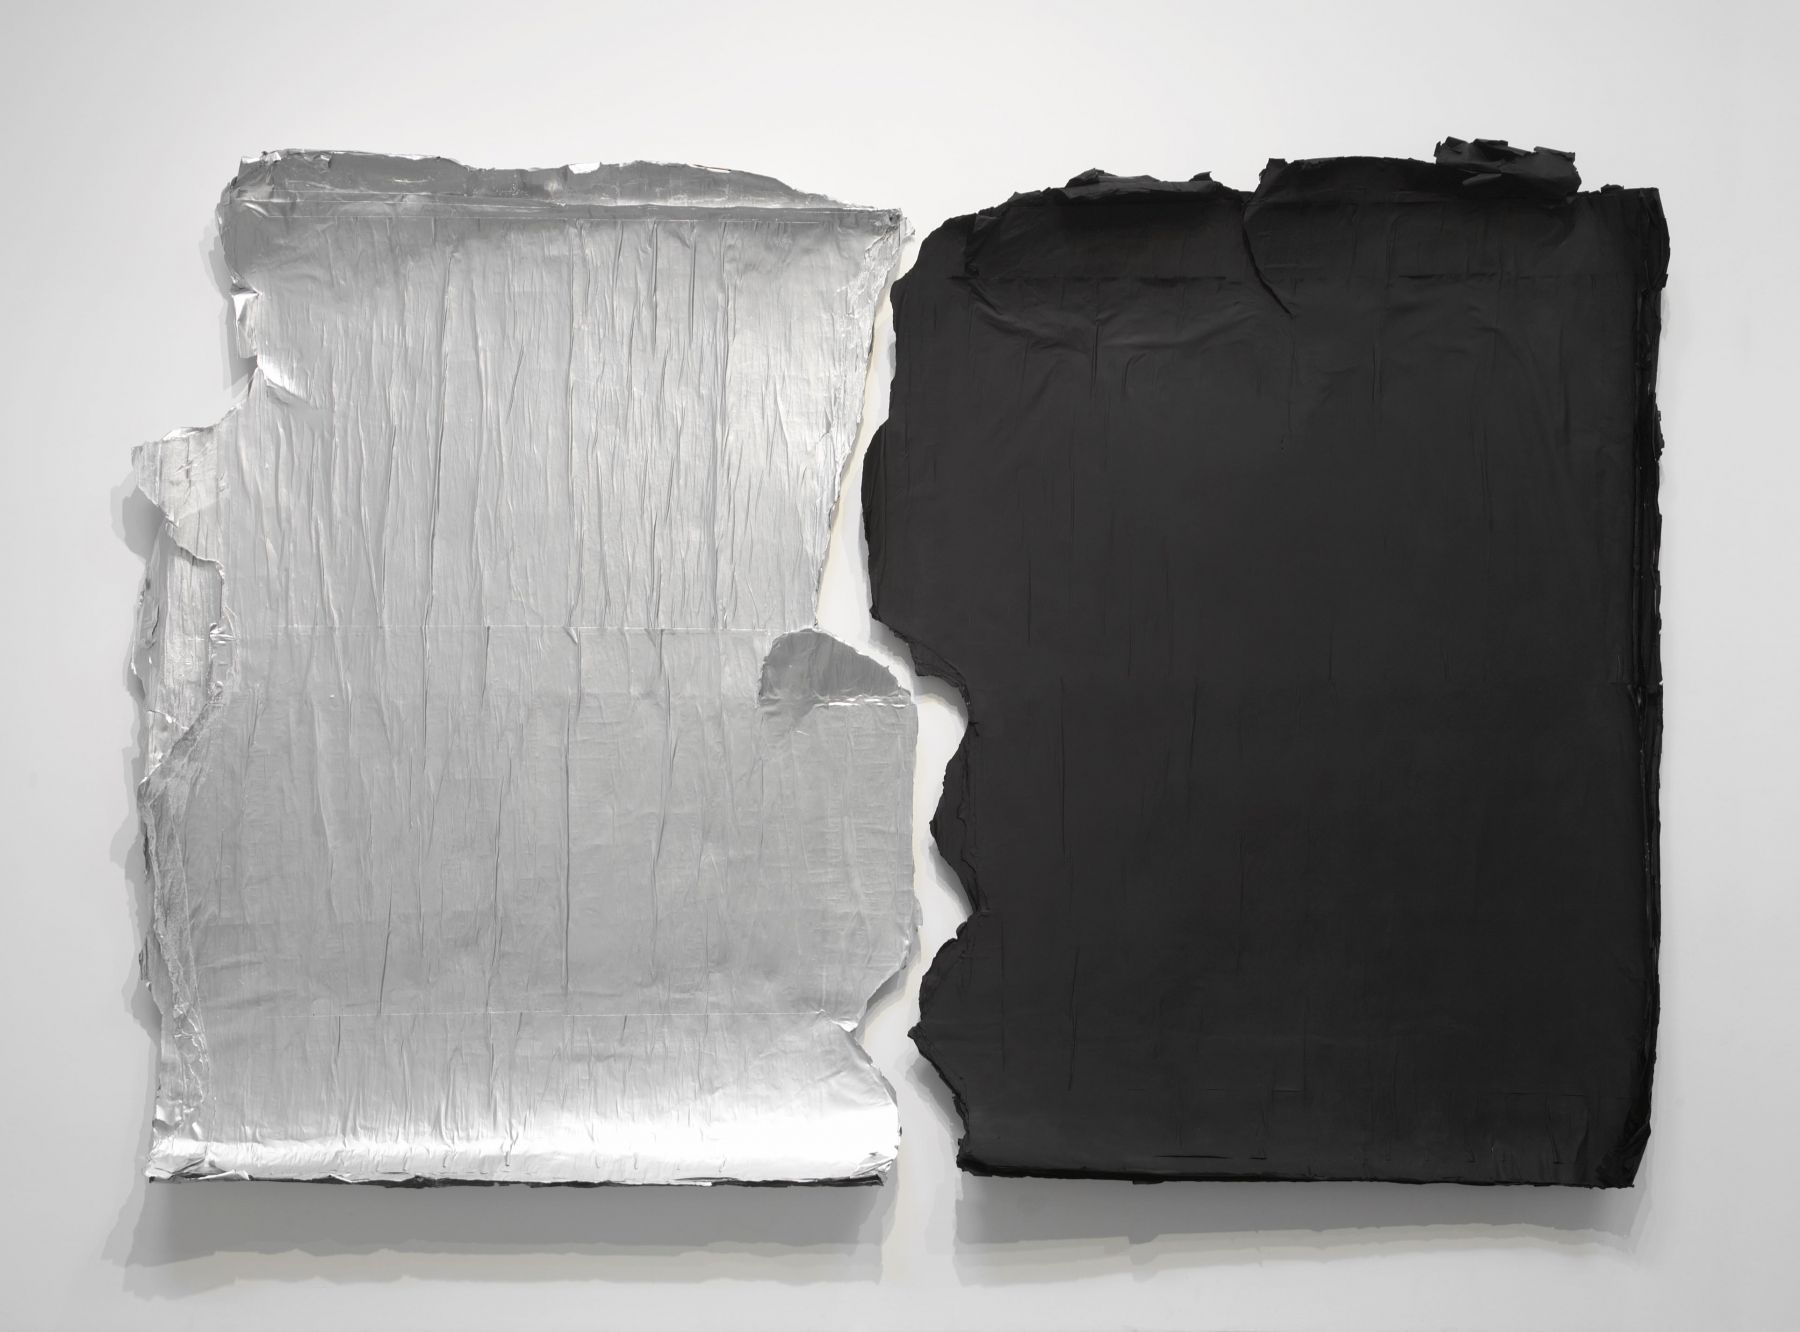 silver and black panels peeling off the wall by jeroen jongeleen